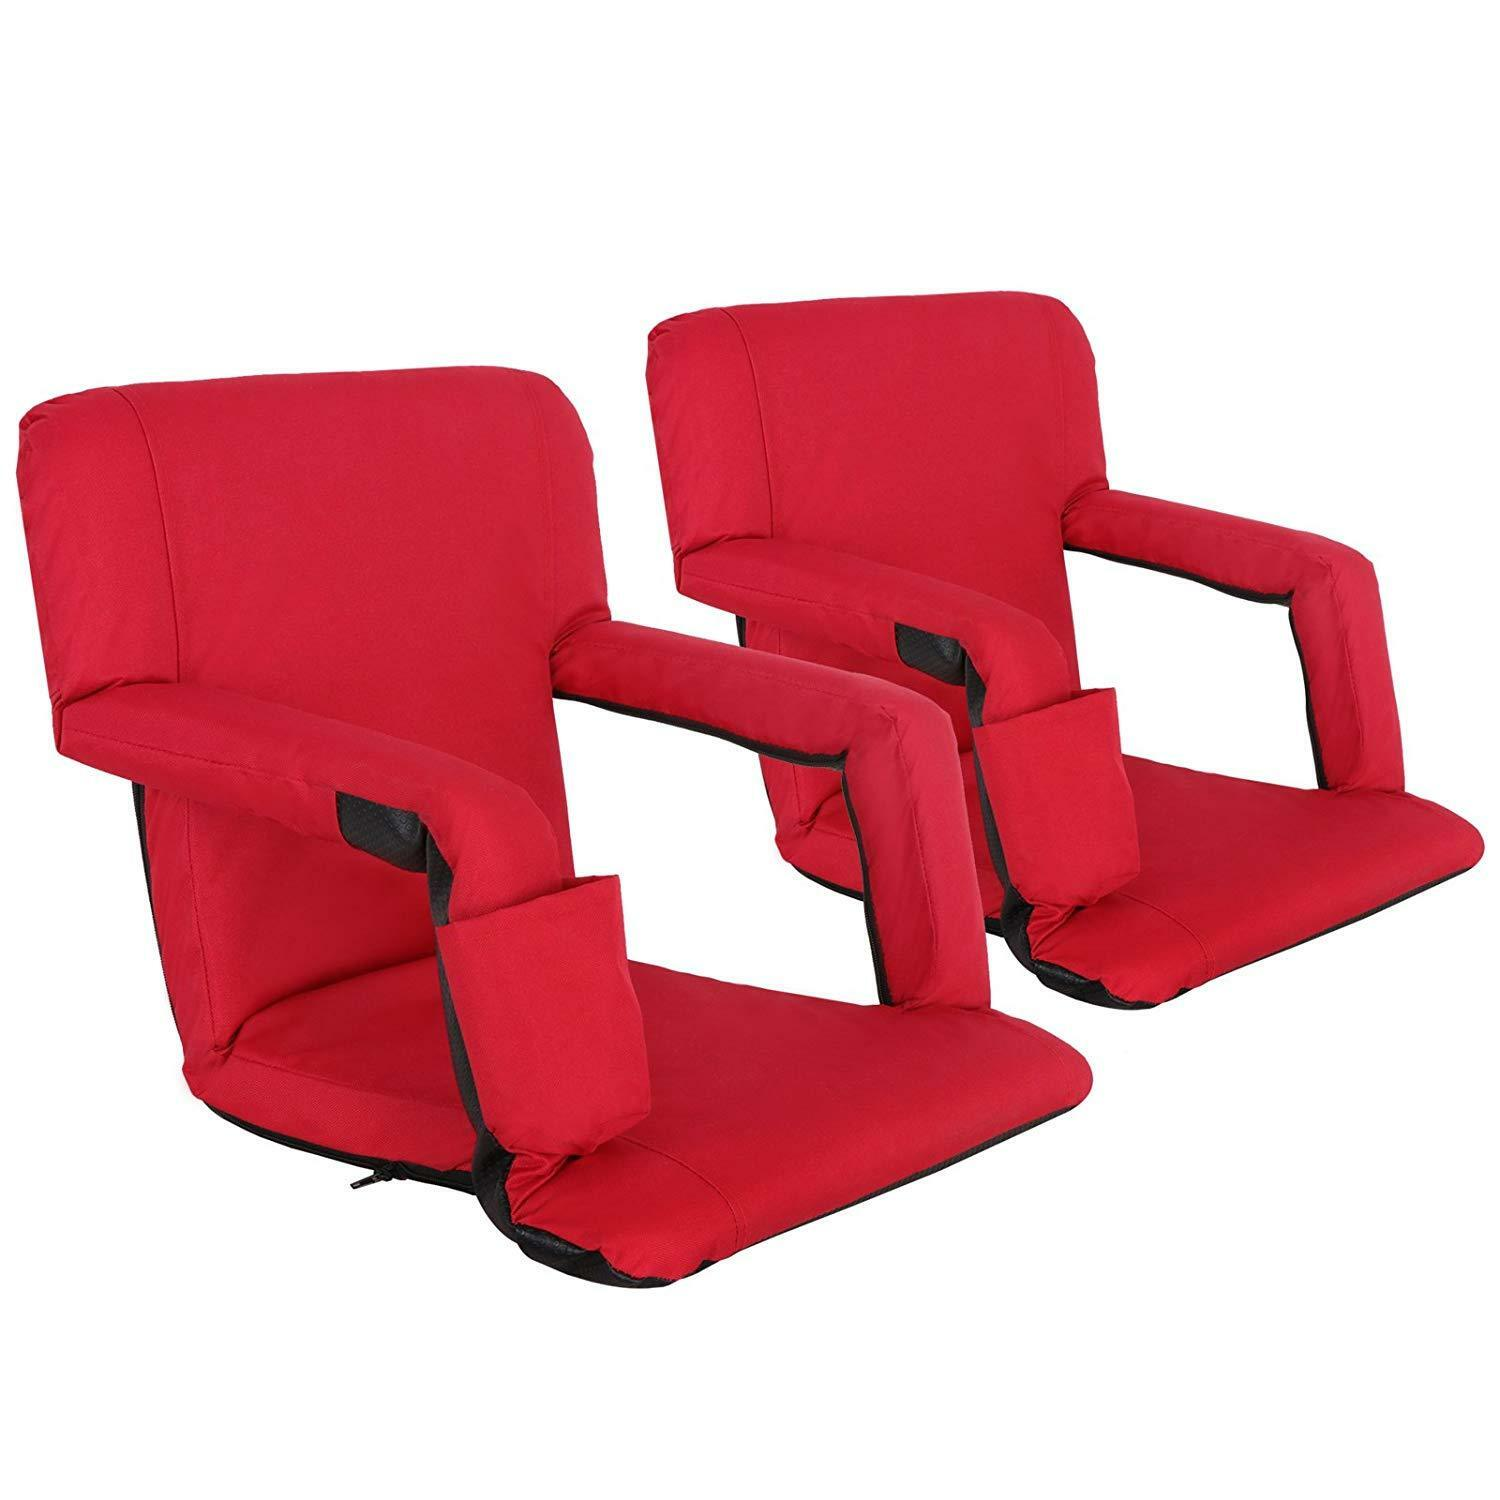 Two Stadium Seats Competition Concert Reclining Seat Red 5 Positions Tiltable